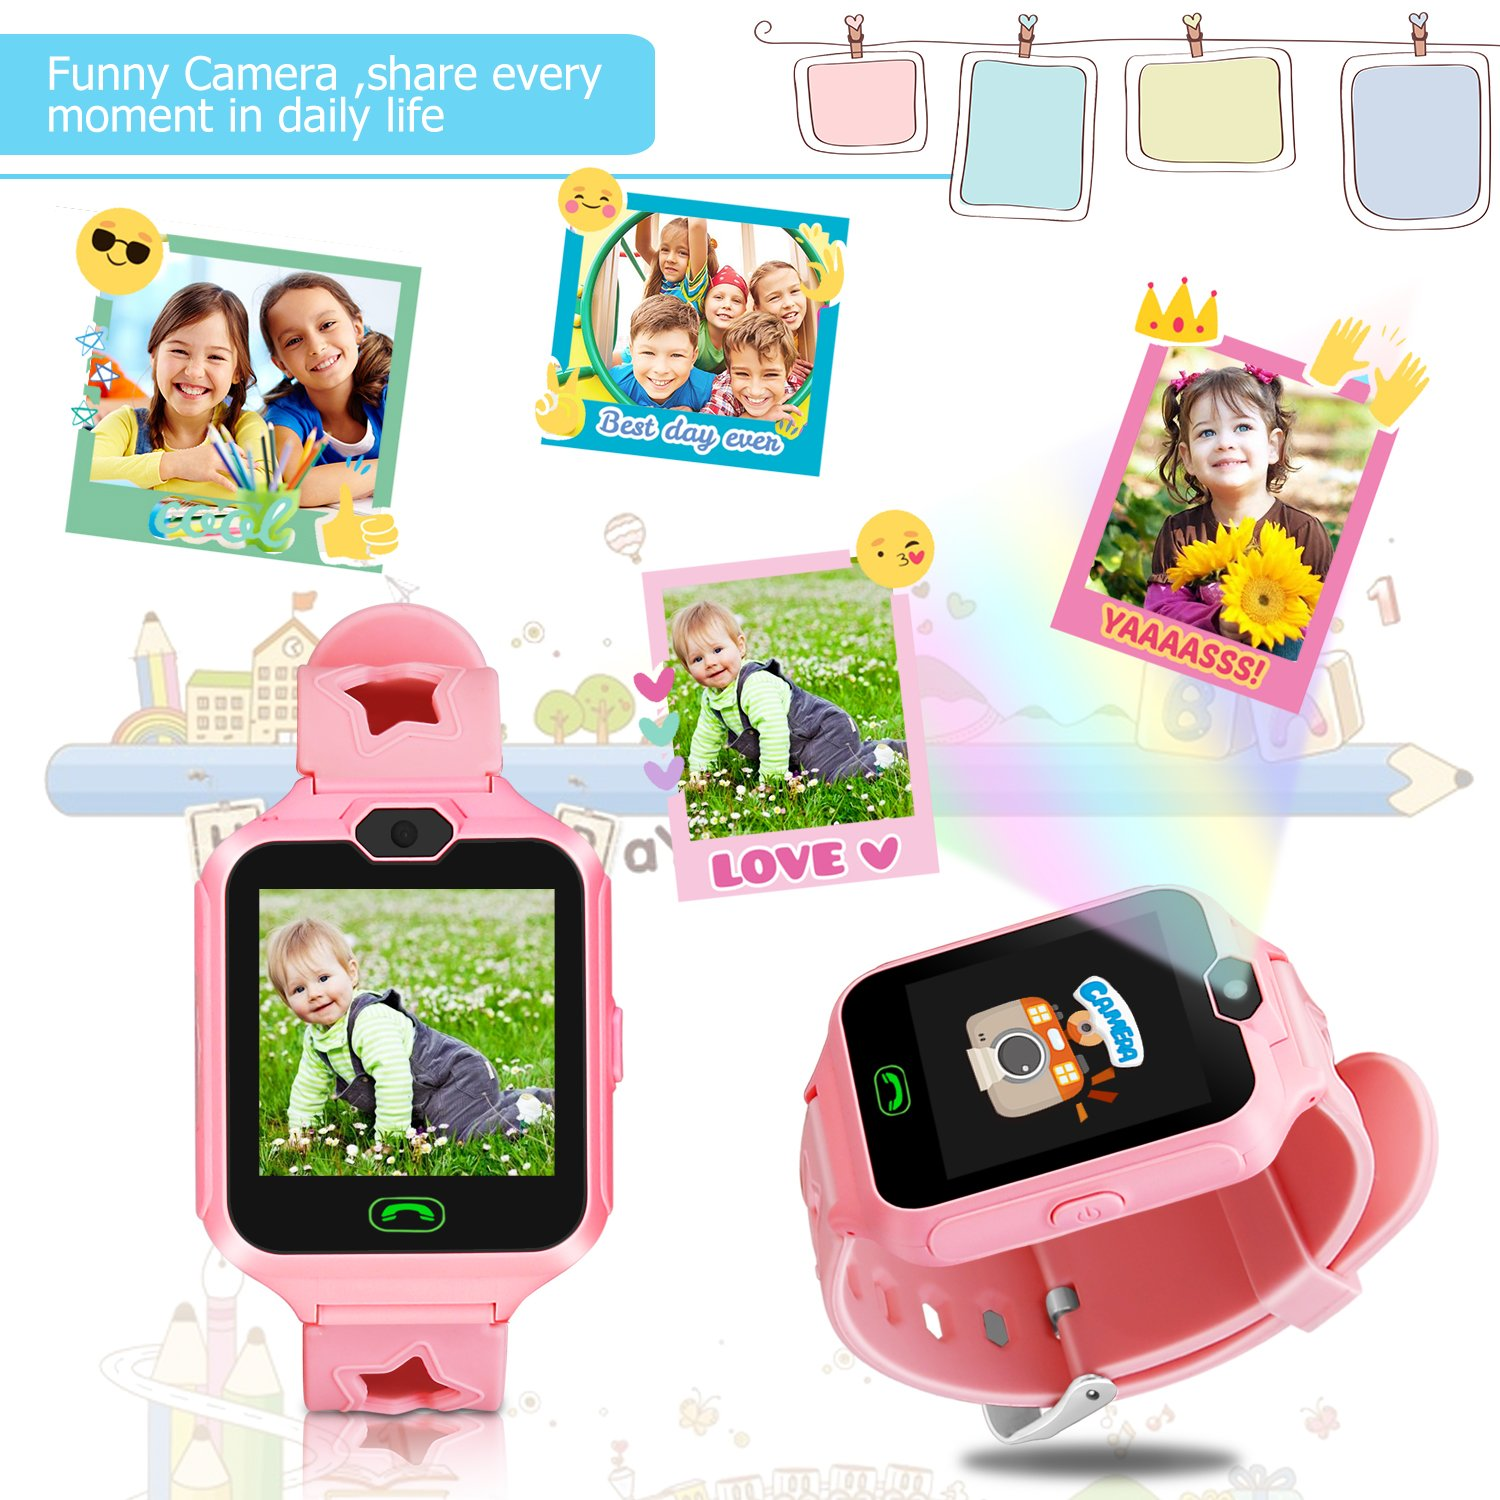 Kids Smart Watch Phone,Unlocked Waterproof Smart Phone Watch for Girls Boys with Camera Games Touchscreen,Children SOS Cell Phone Watch with SIM and SD Slot,Perfect Holiday Birthday Gifts(Pink) by MIMLI (Image #3)